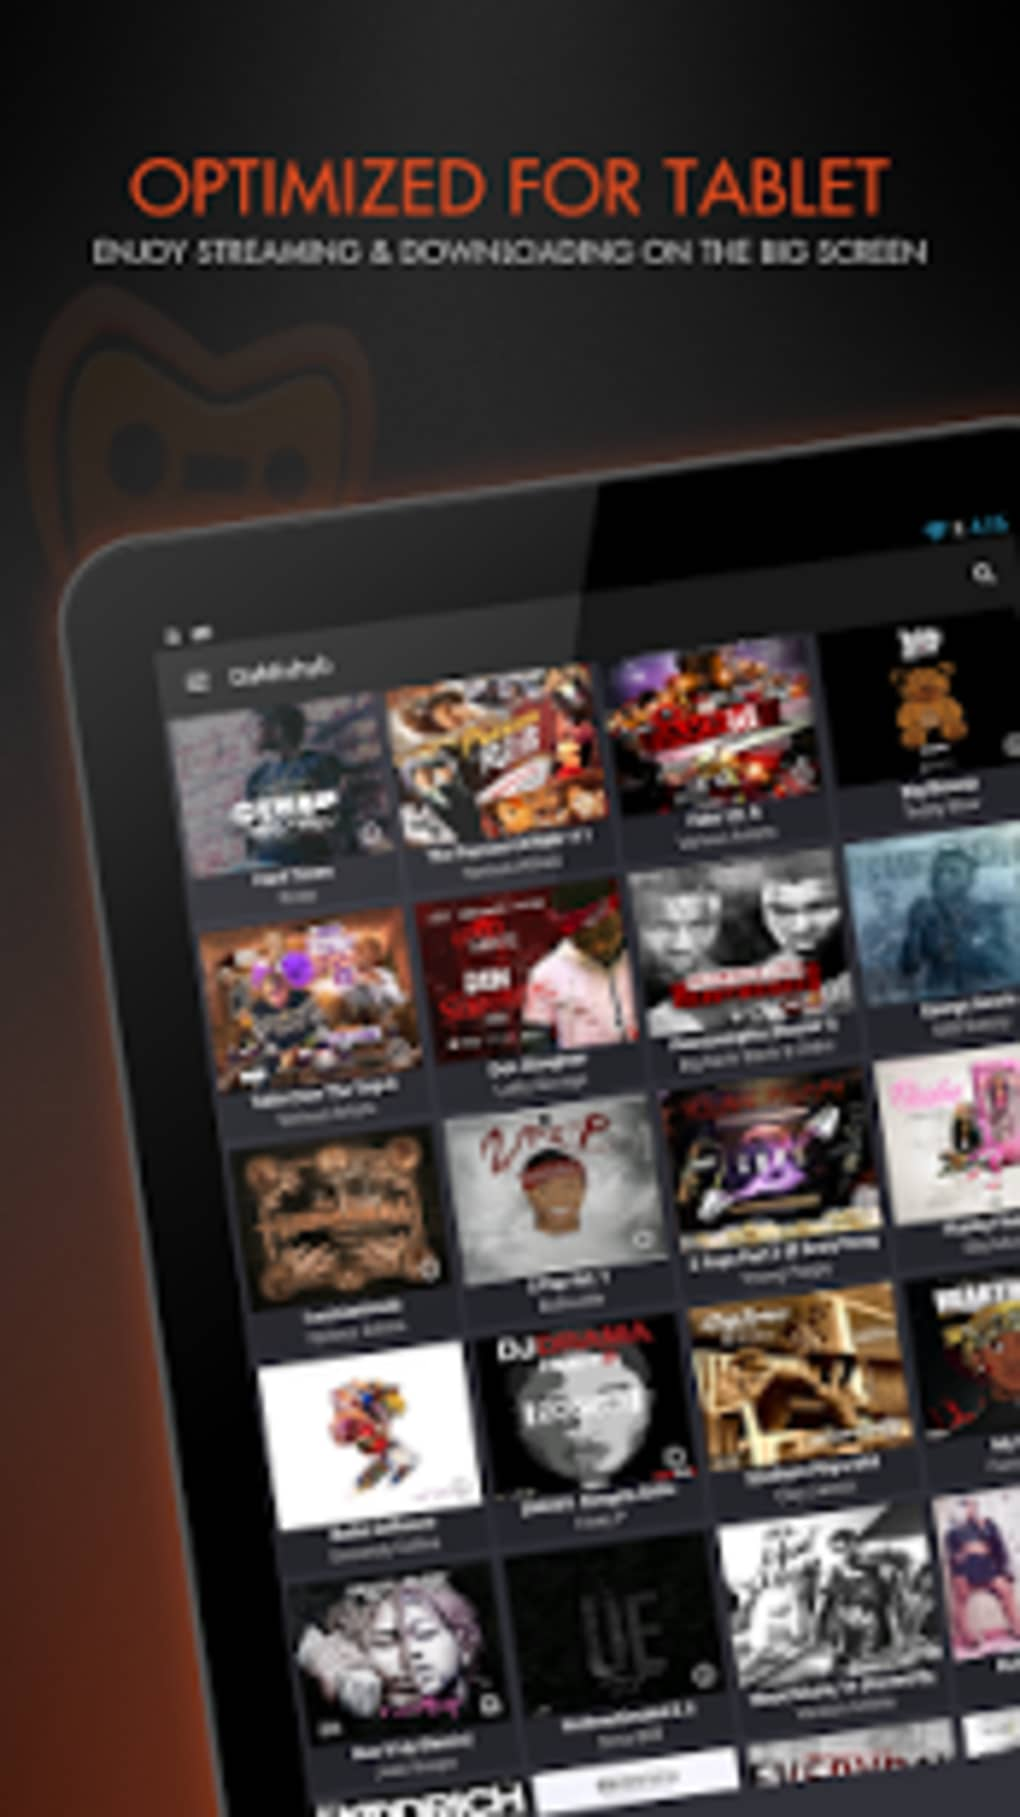 DaMixhub Hip-Hop & Mixtapes for Android - Download